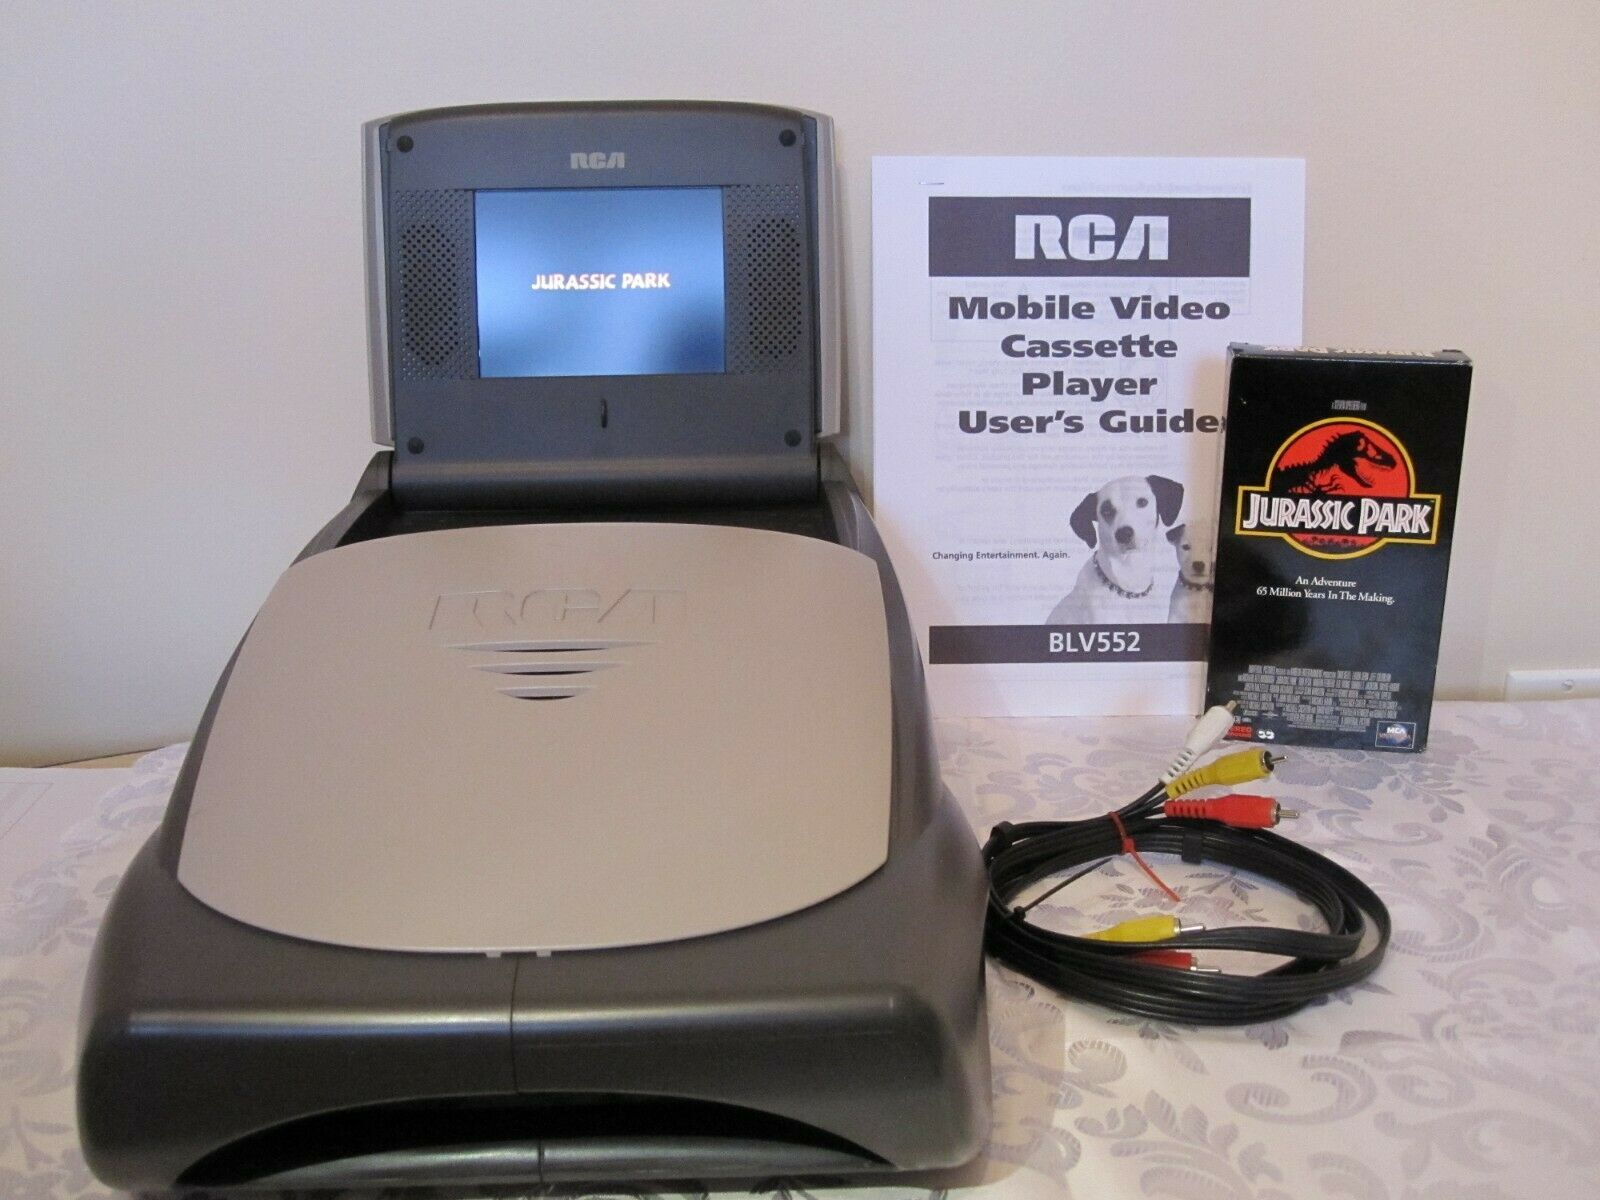 Rca Blv552 Portable Video Cassette Player Tested Unit From 2003 Vcr Vhs Hi8 Cassette Player Cassette Mobile Video